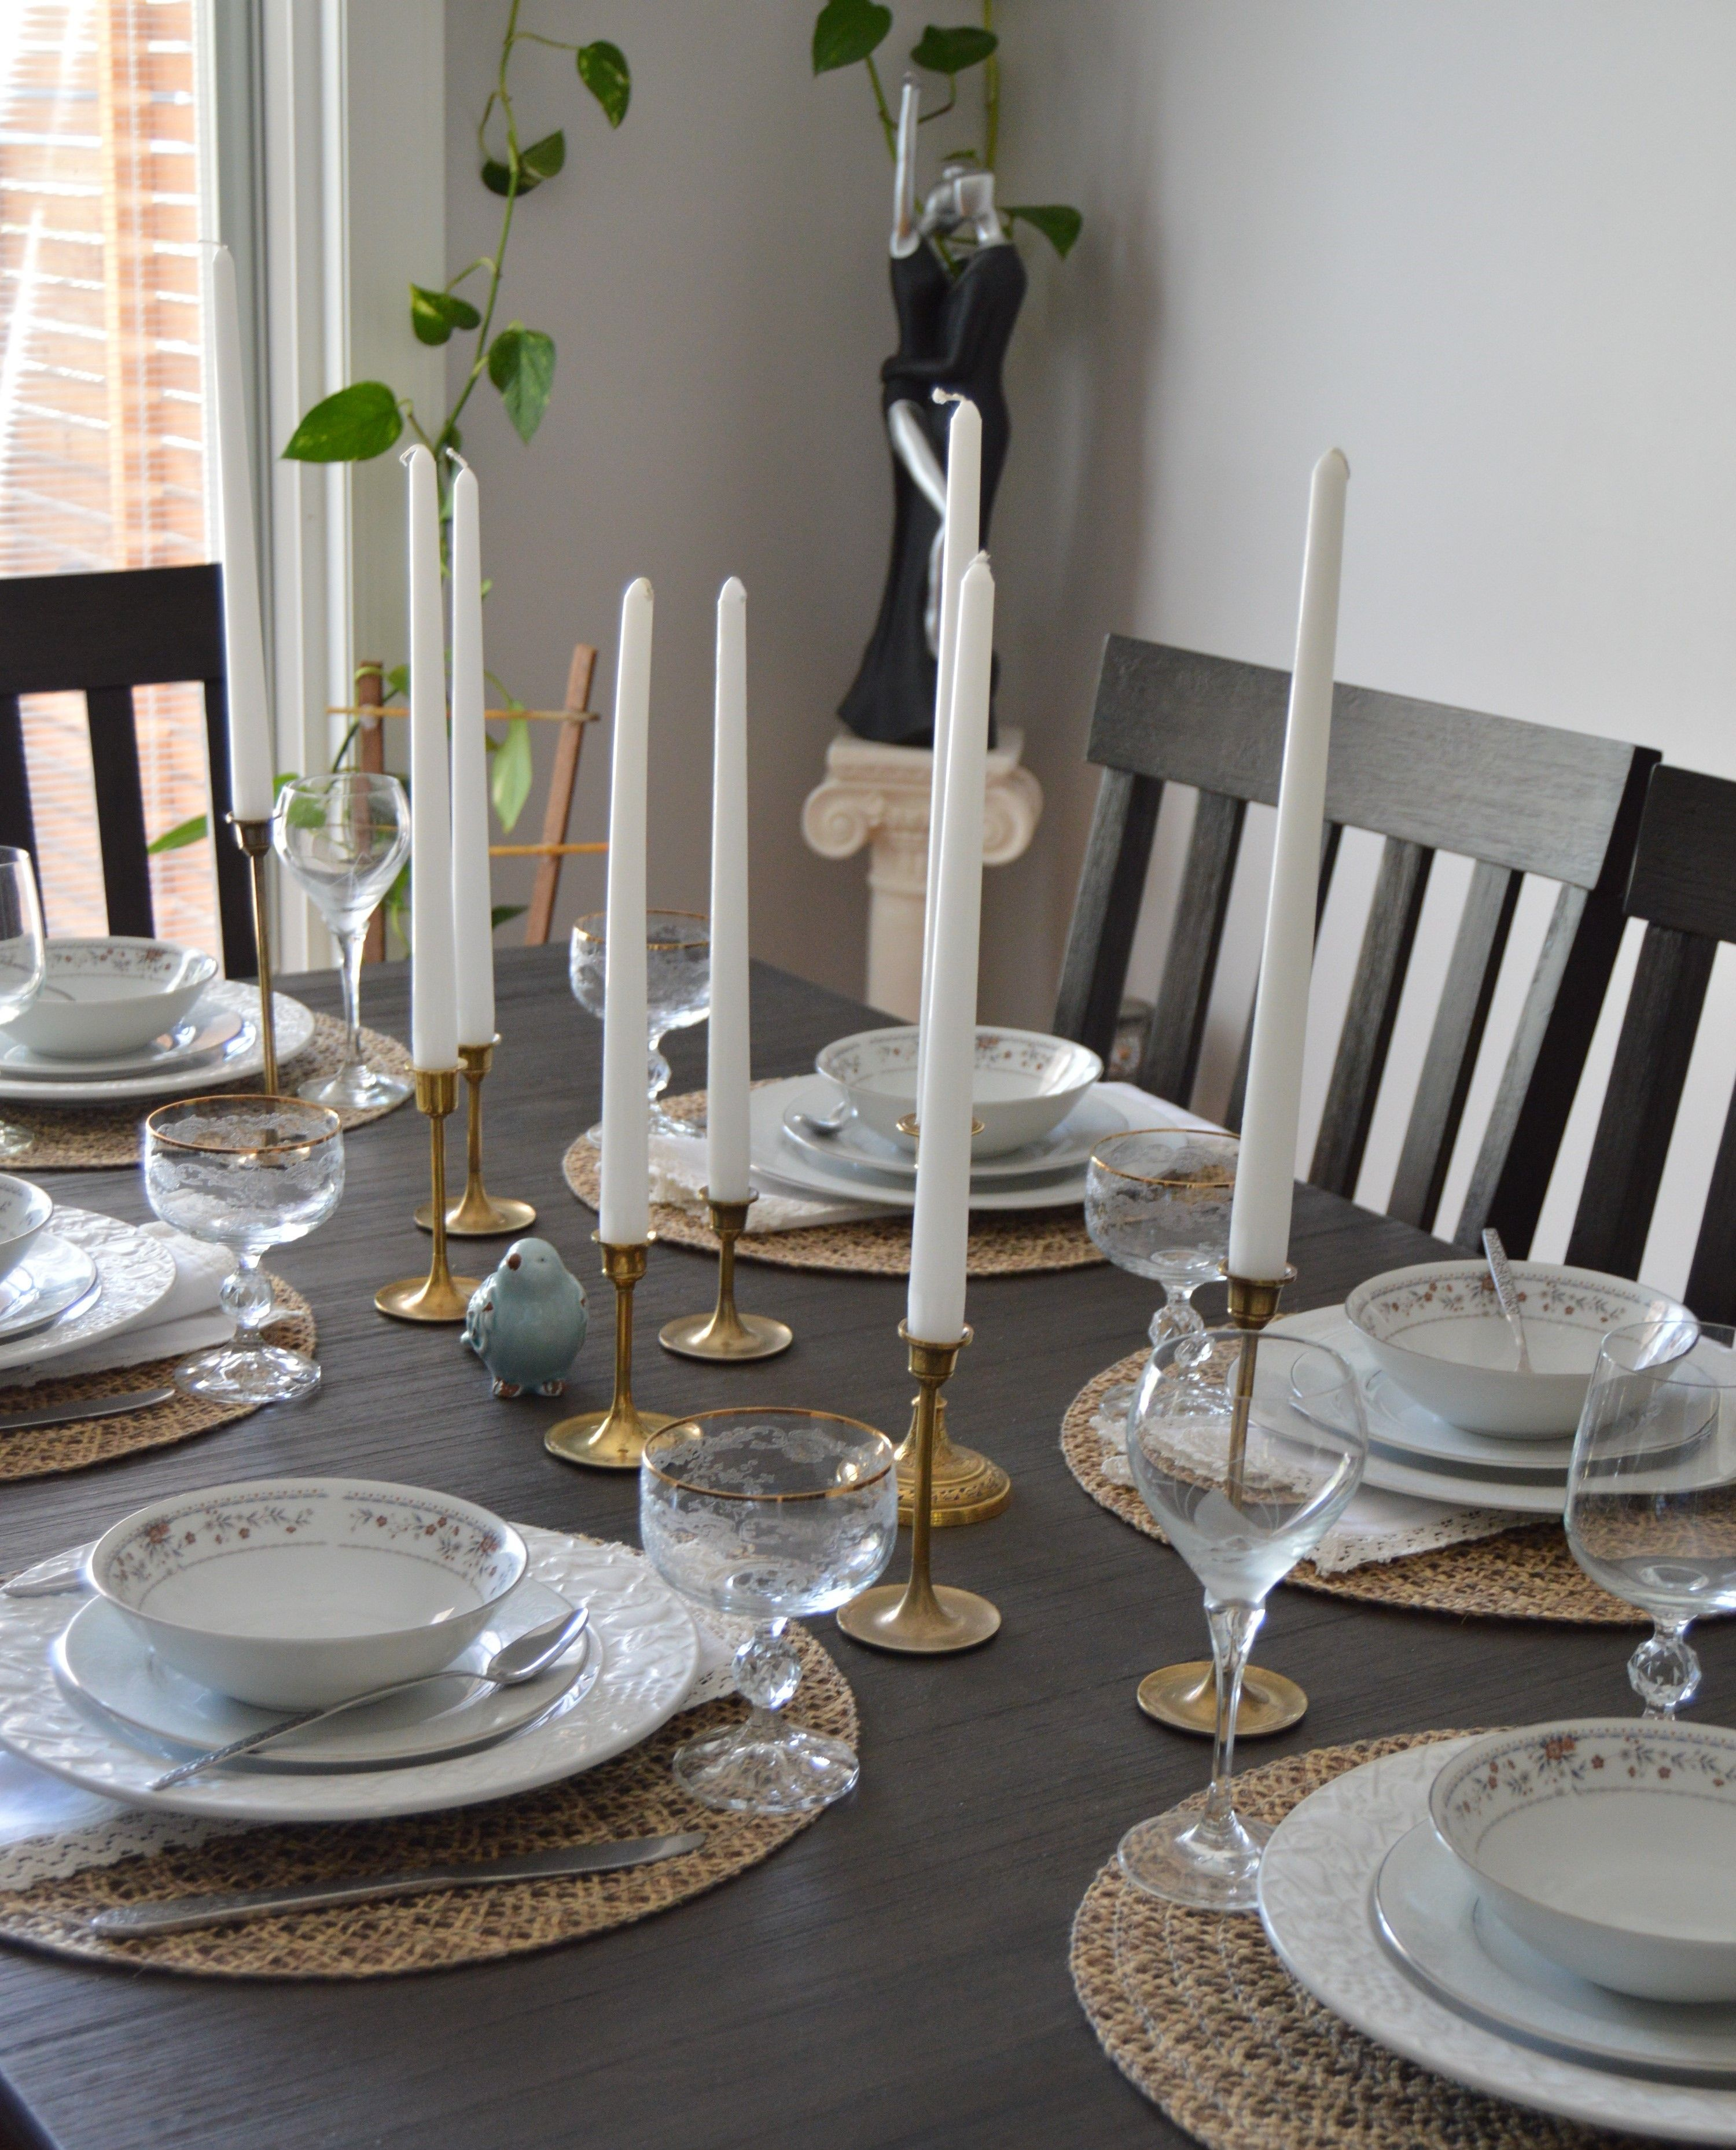 Tablescape Brass Candlesticks And Vintage Dinnerware Finds At Goodwill